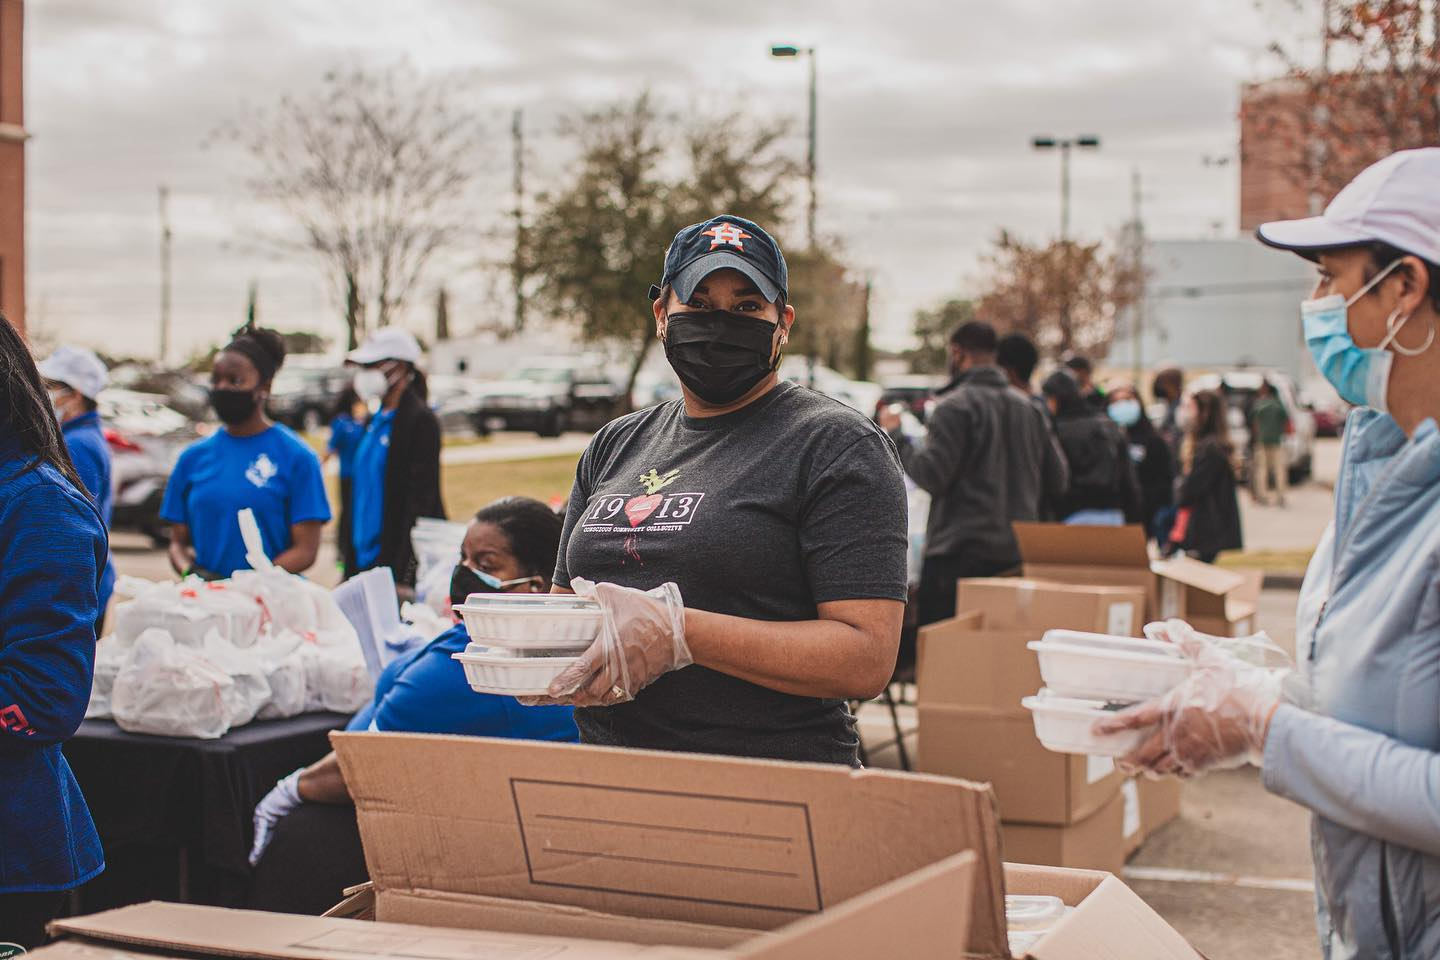 People distributing food in the aftermath of Texas winter storms.